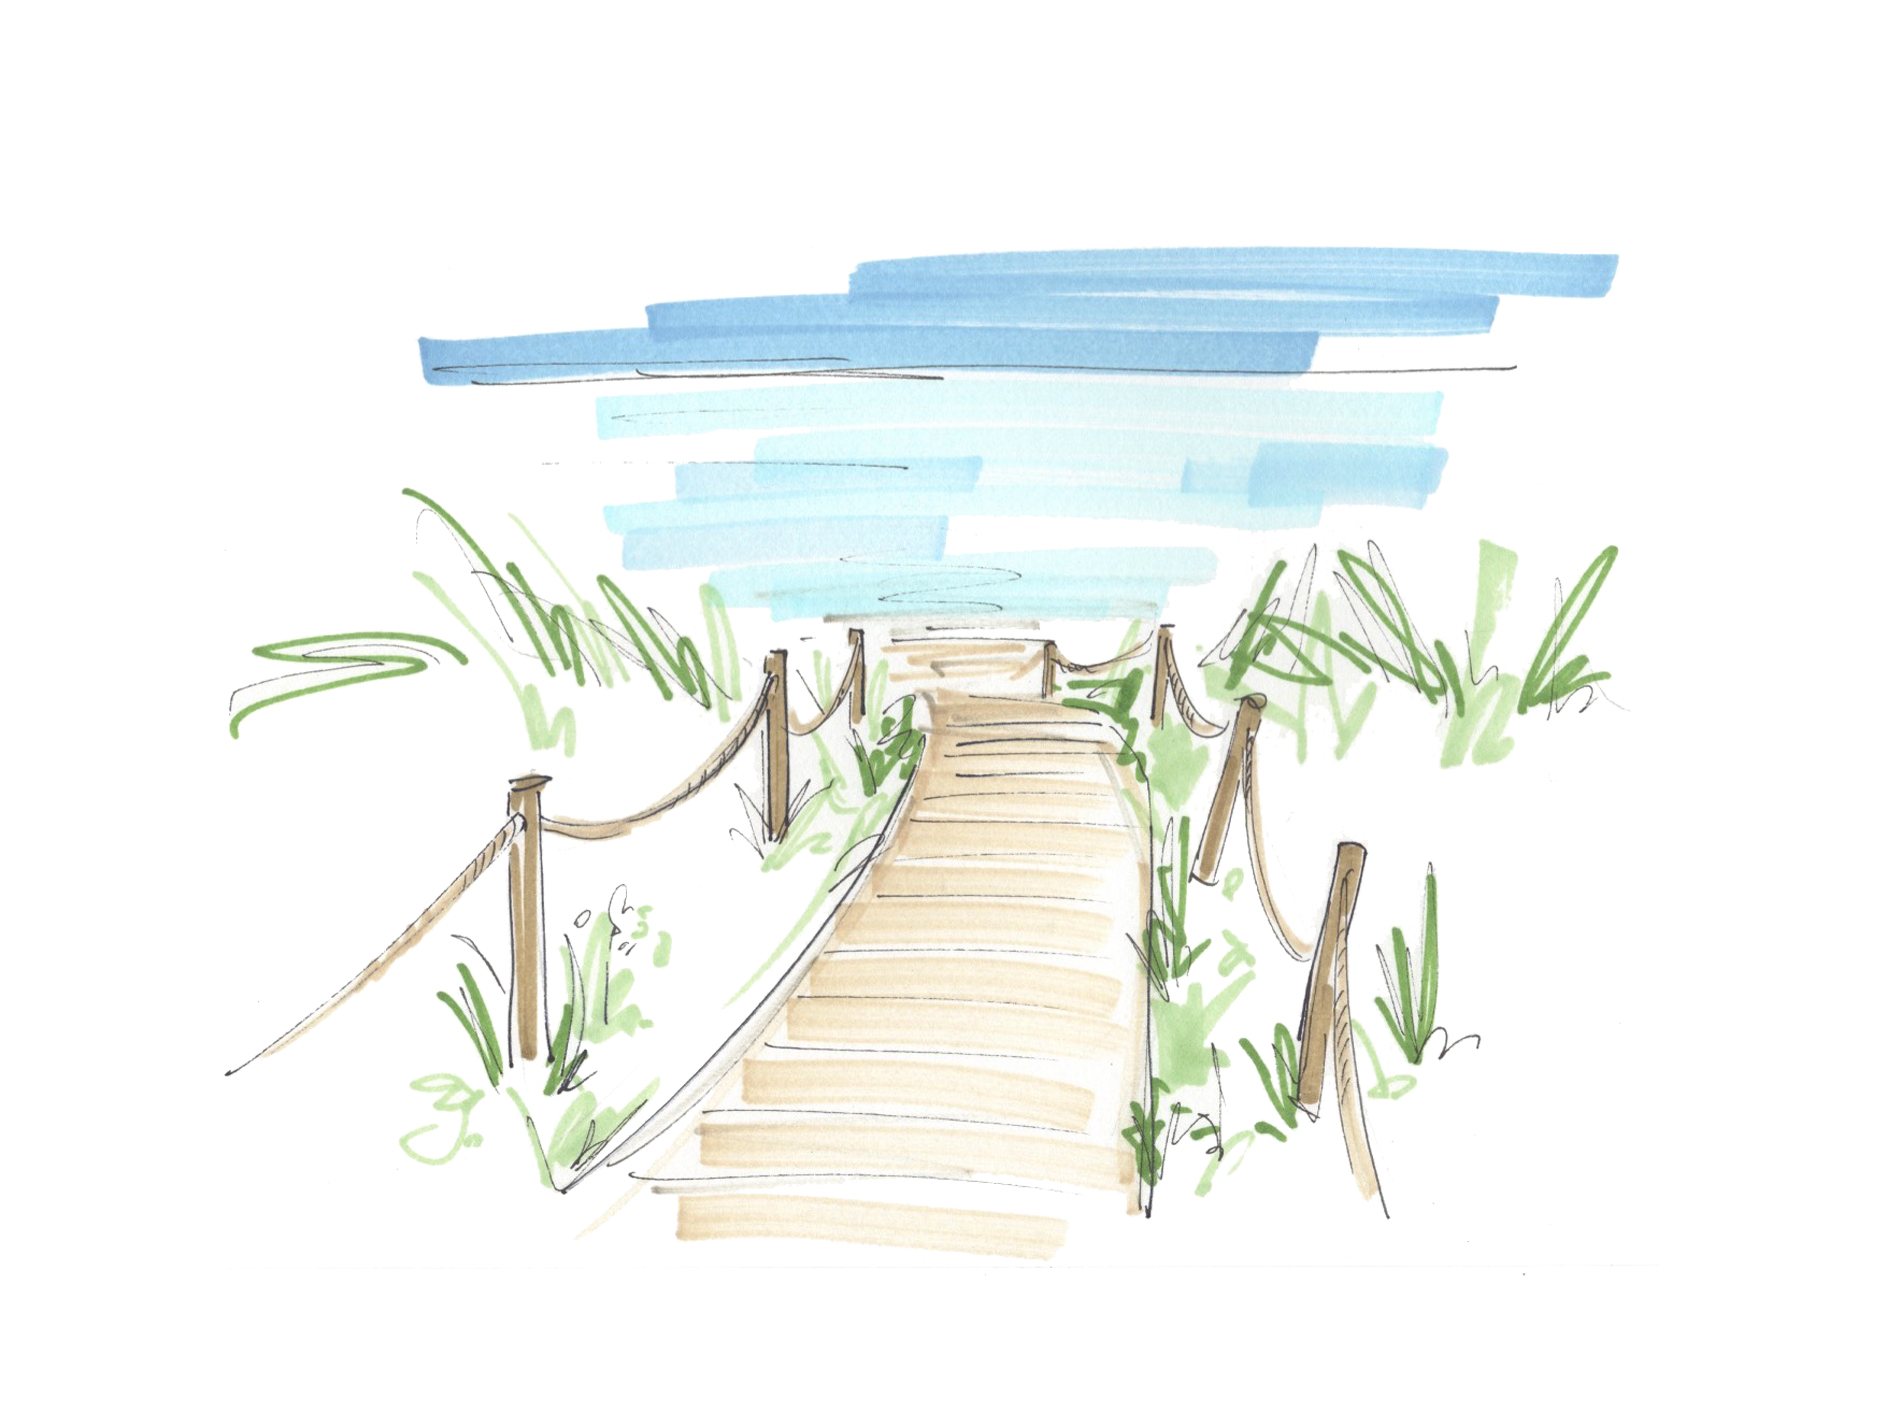 Travel: Formentera (illustrated) higlights